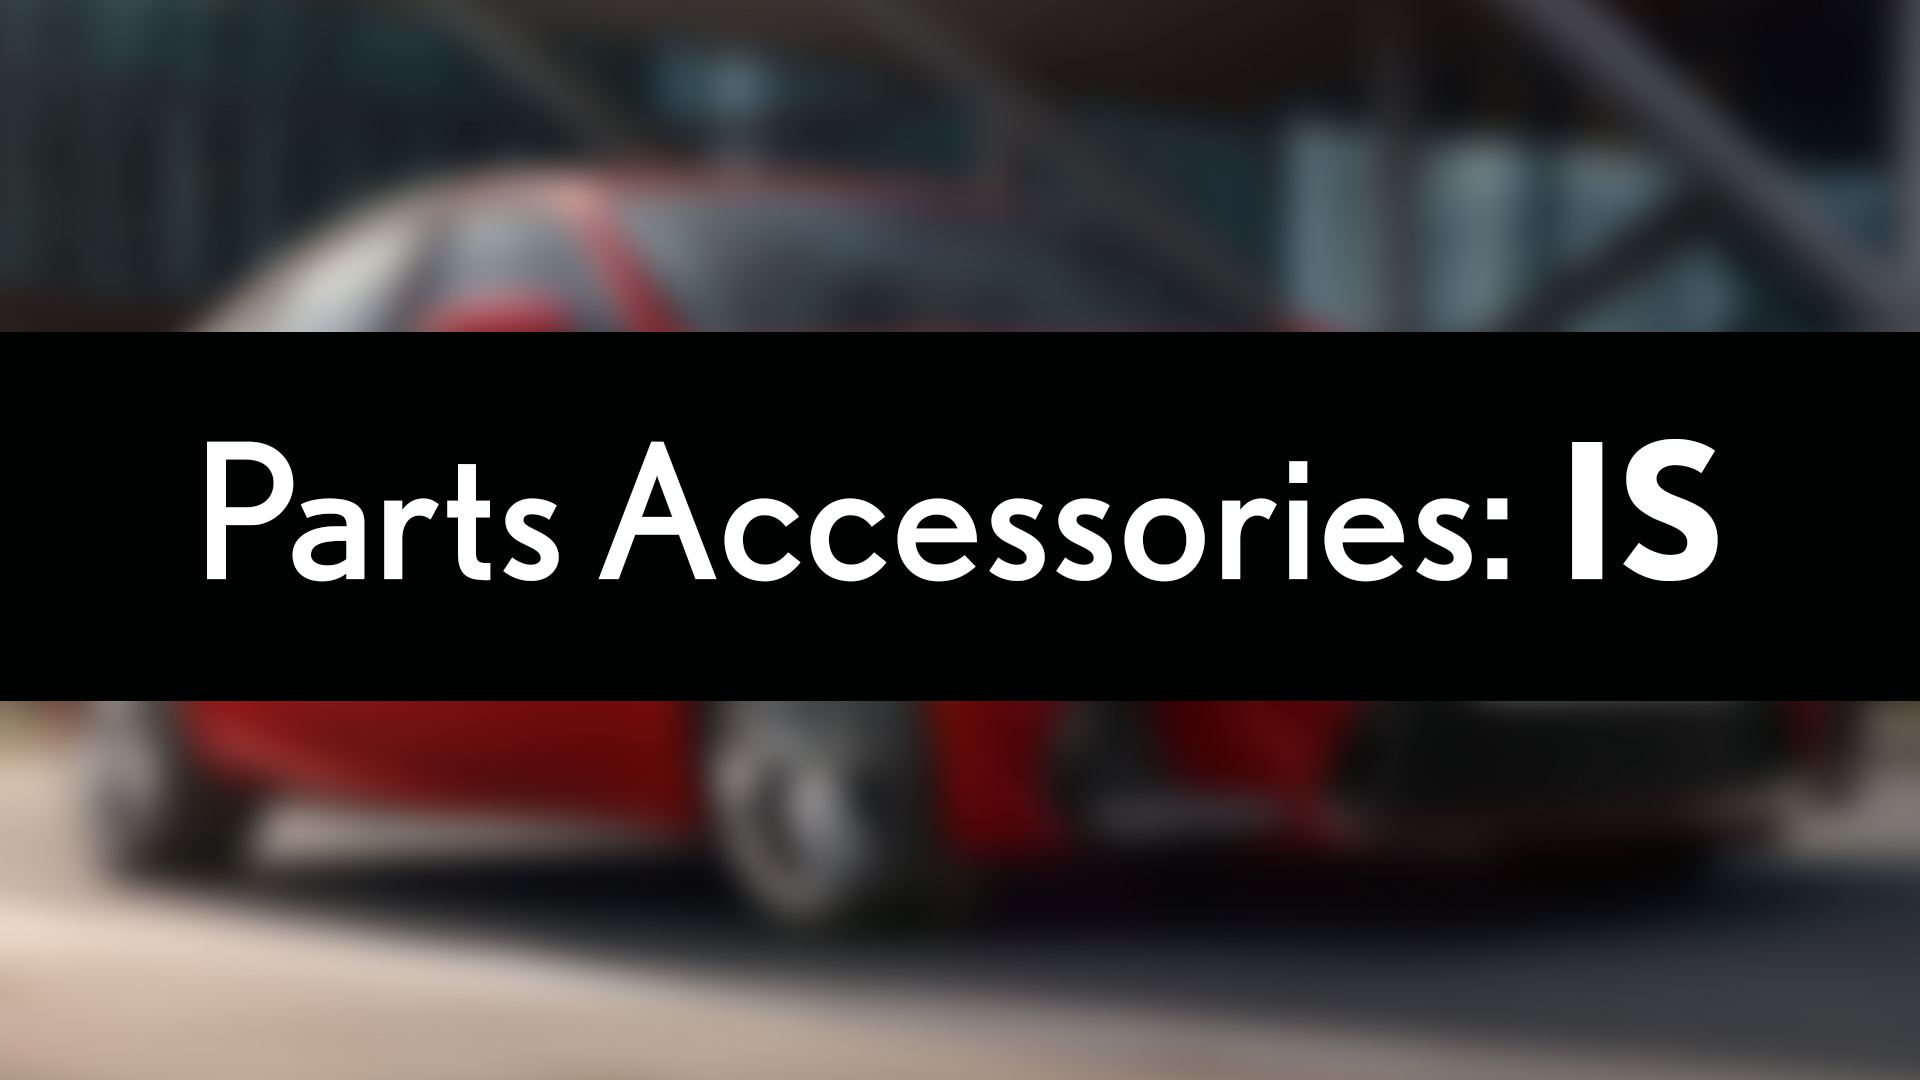 Lexus IS Parts Accessories